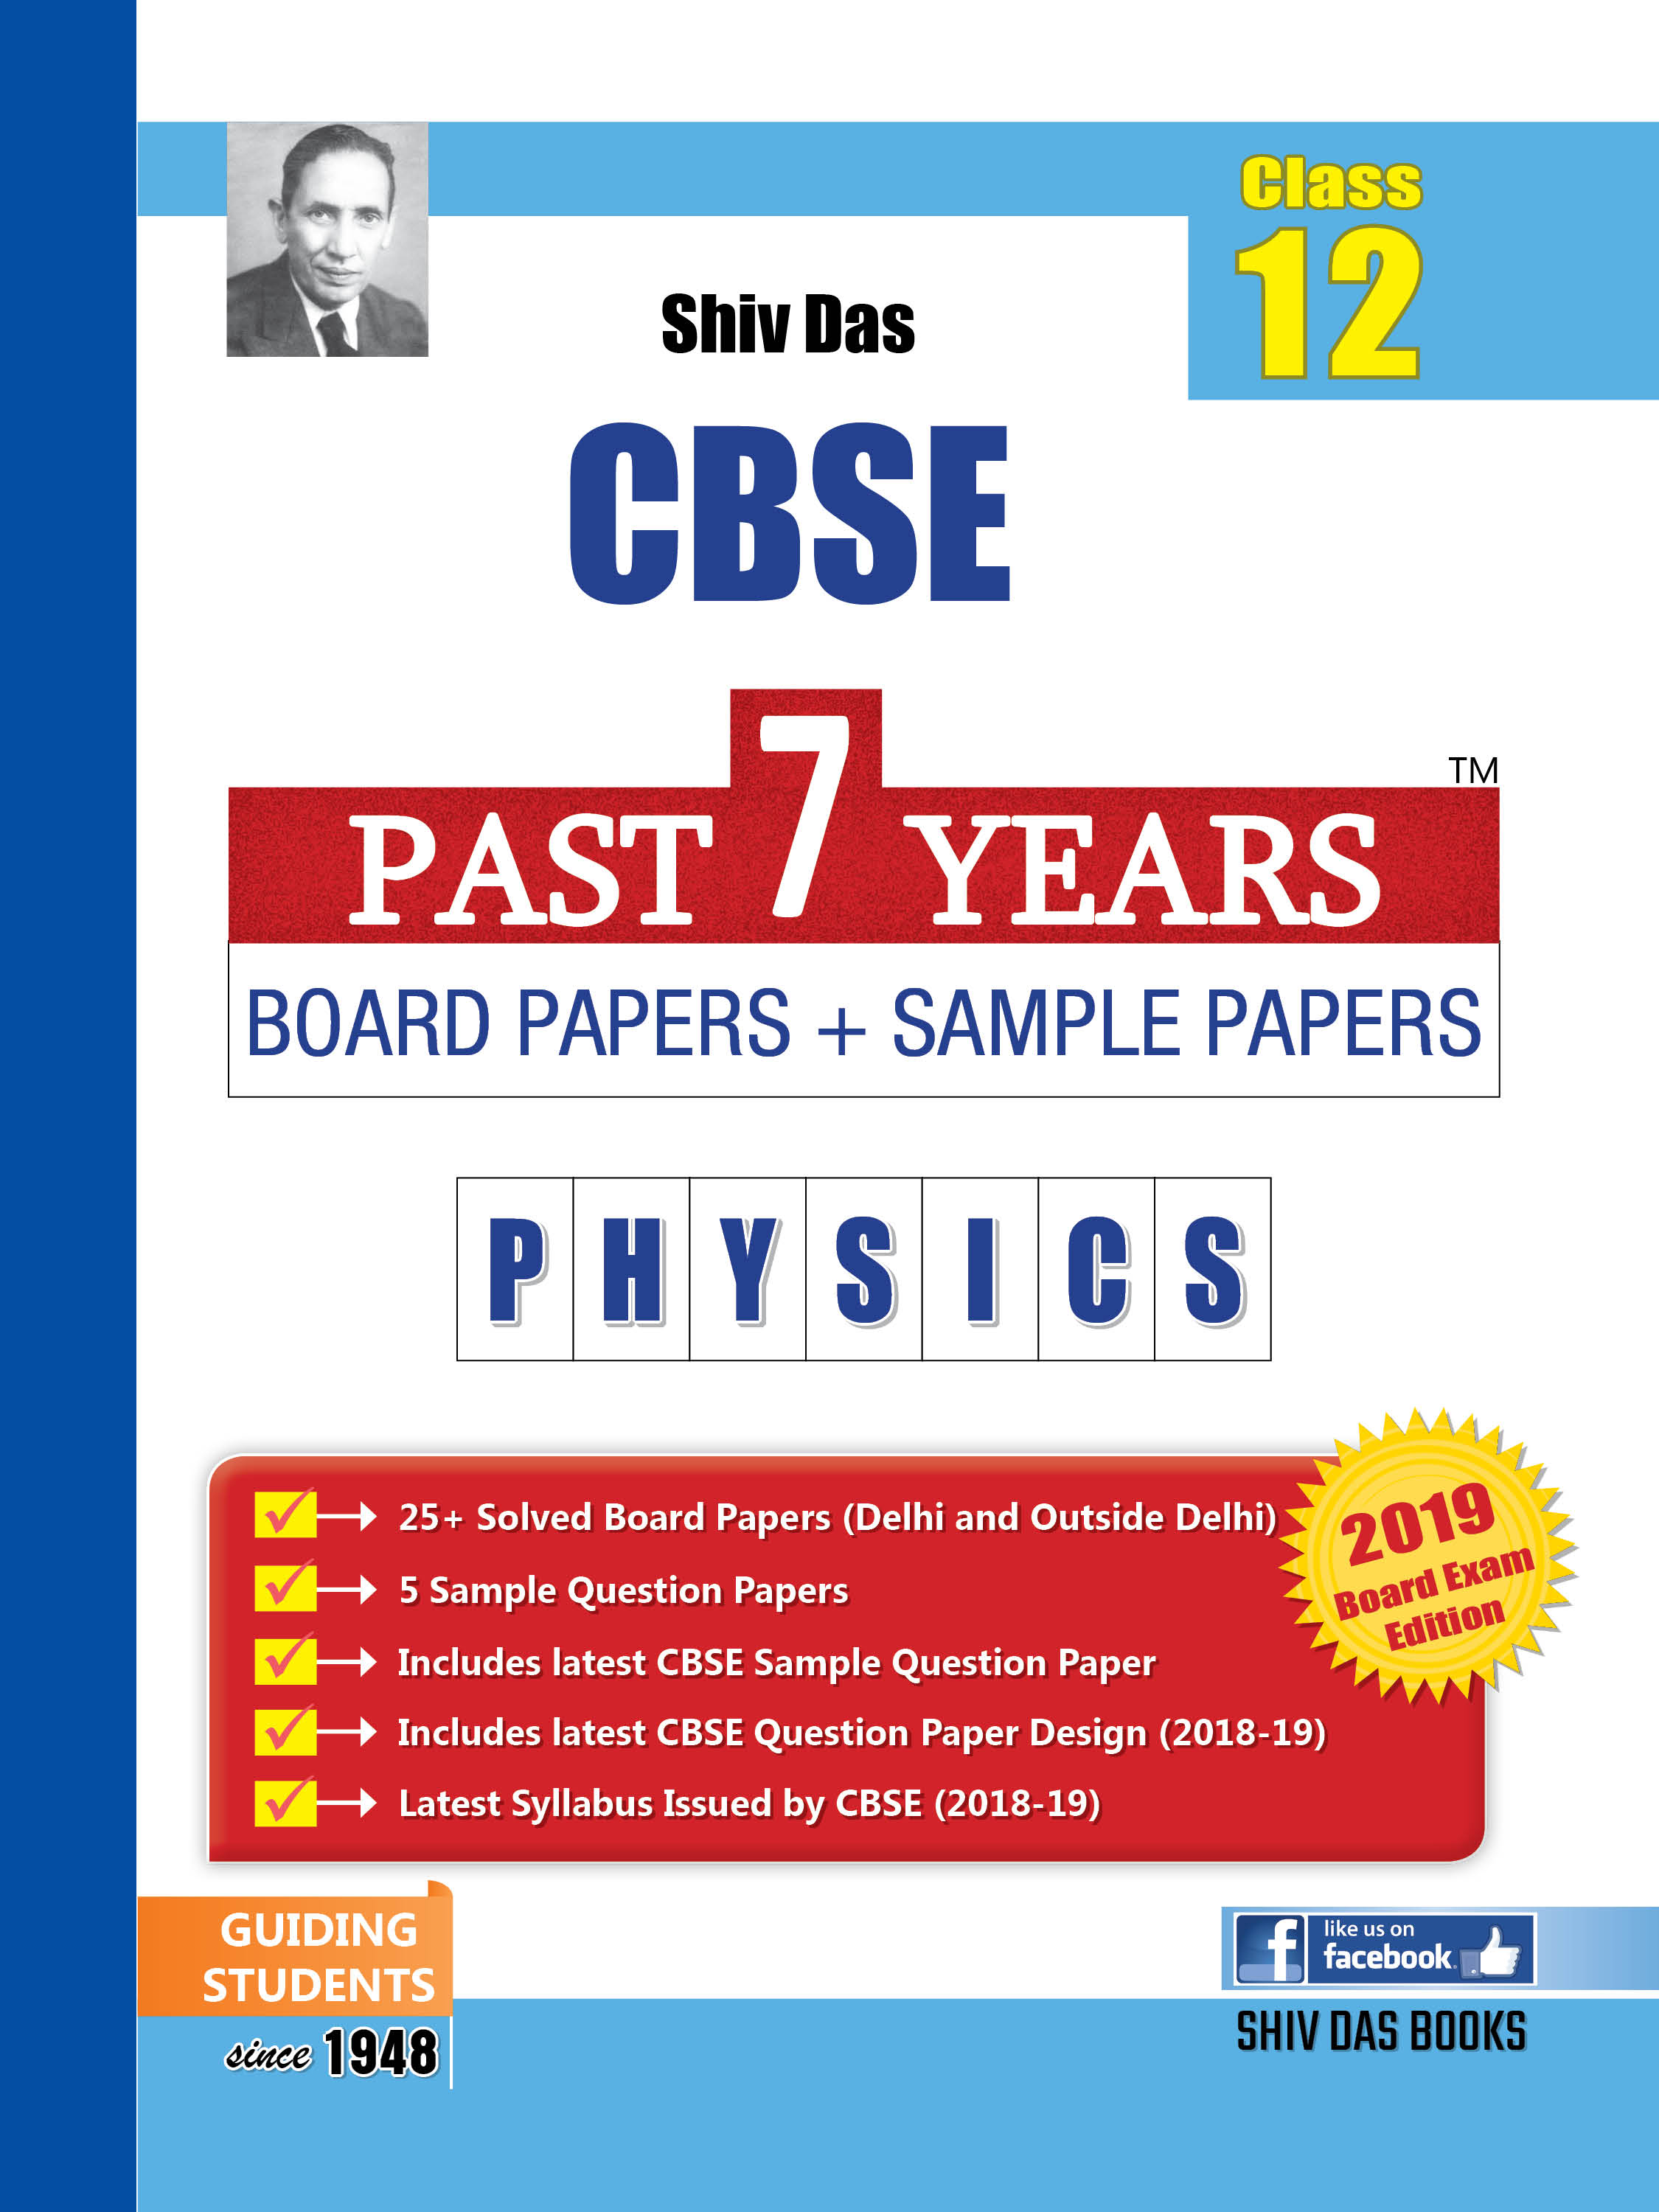 CBSE Past 7 Years Solved Board Papers+Sample Papers for Class 12 Physics (2019 Board Exam Edition)